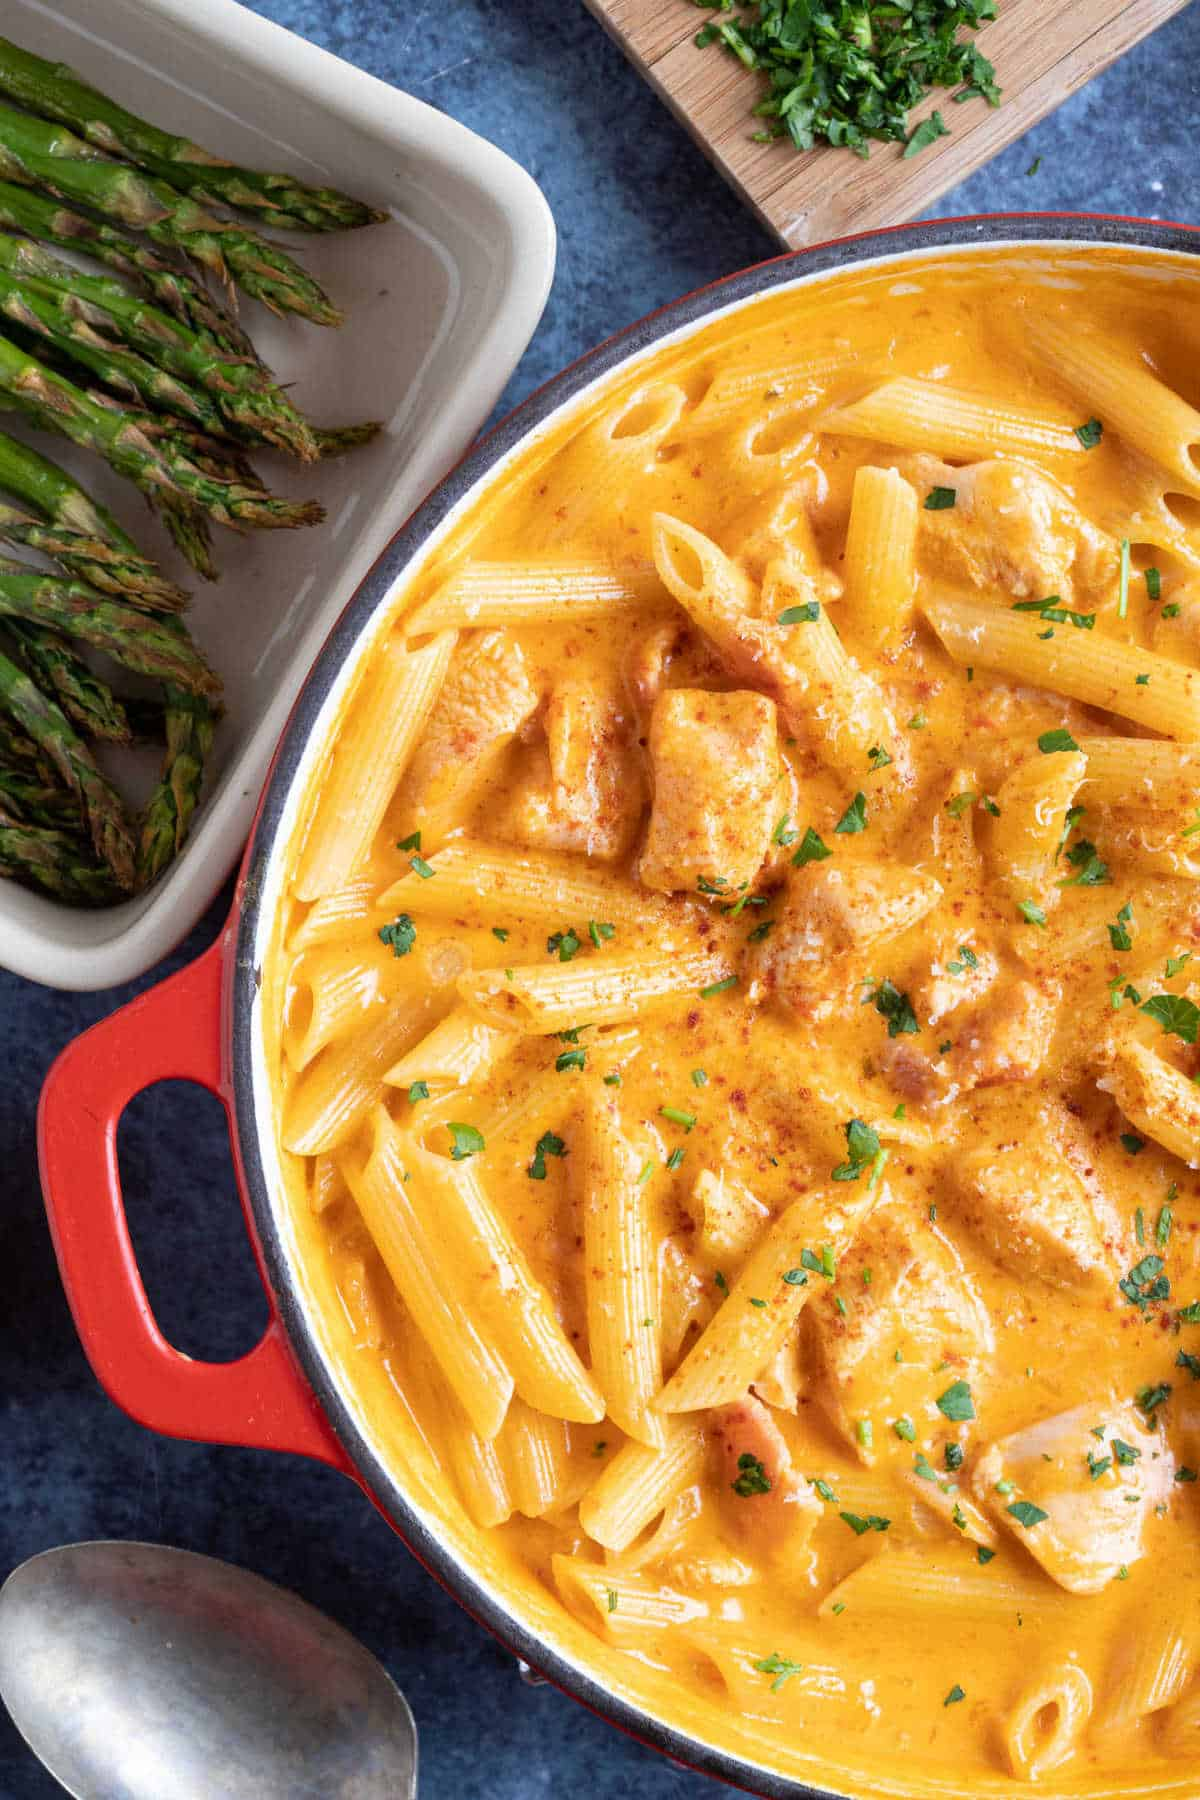 Paprika chicken pasta with a creamy sauce, served in a red pan.